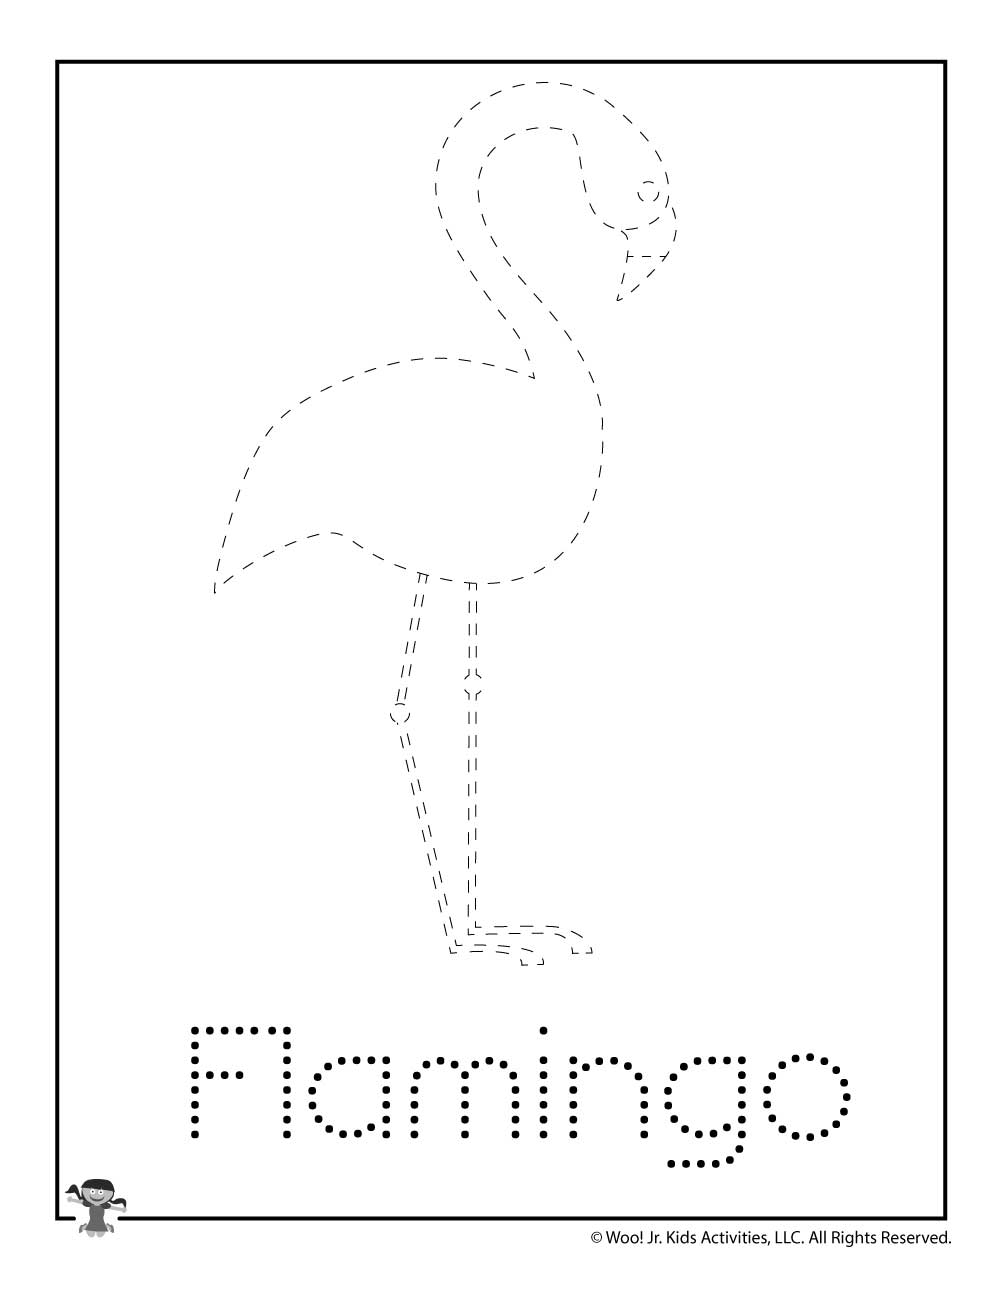 flamingo-f-tracing Valentines Day Fun Worksheets on active listening worksheets, winter color by number worksheets, jesus on valentine's day worksheets, workplace ethics worksheets, fun listening skills activity, memorial day fun worksheets, christmas spelling worksheets,